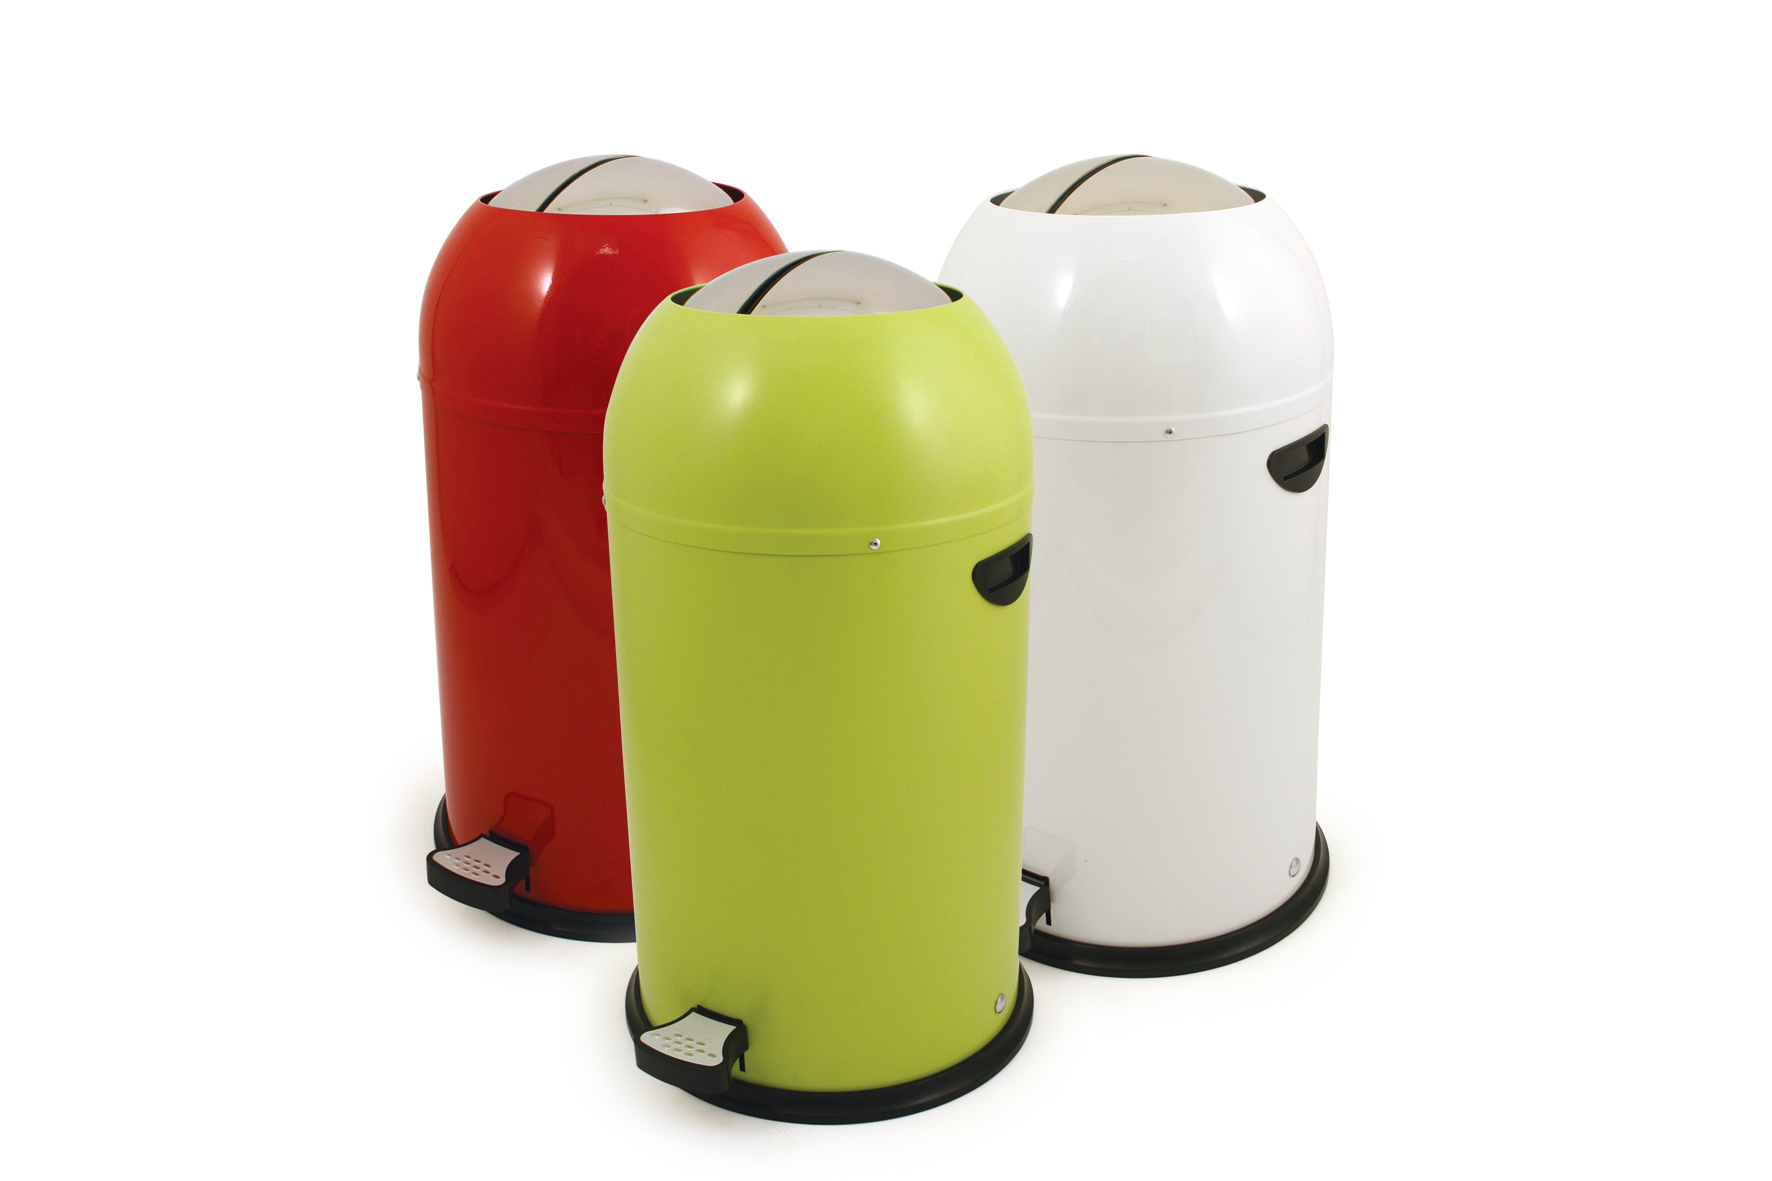 butterfly kitchen pedal bin 33l in lime green red white ebay. Black Bedroom Furniture Sets. Home Design Ideas